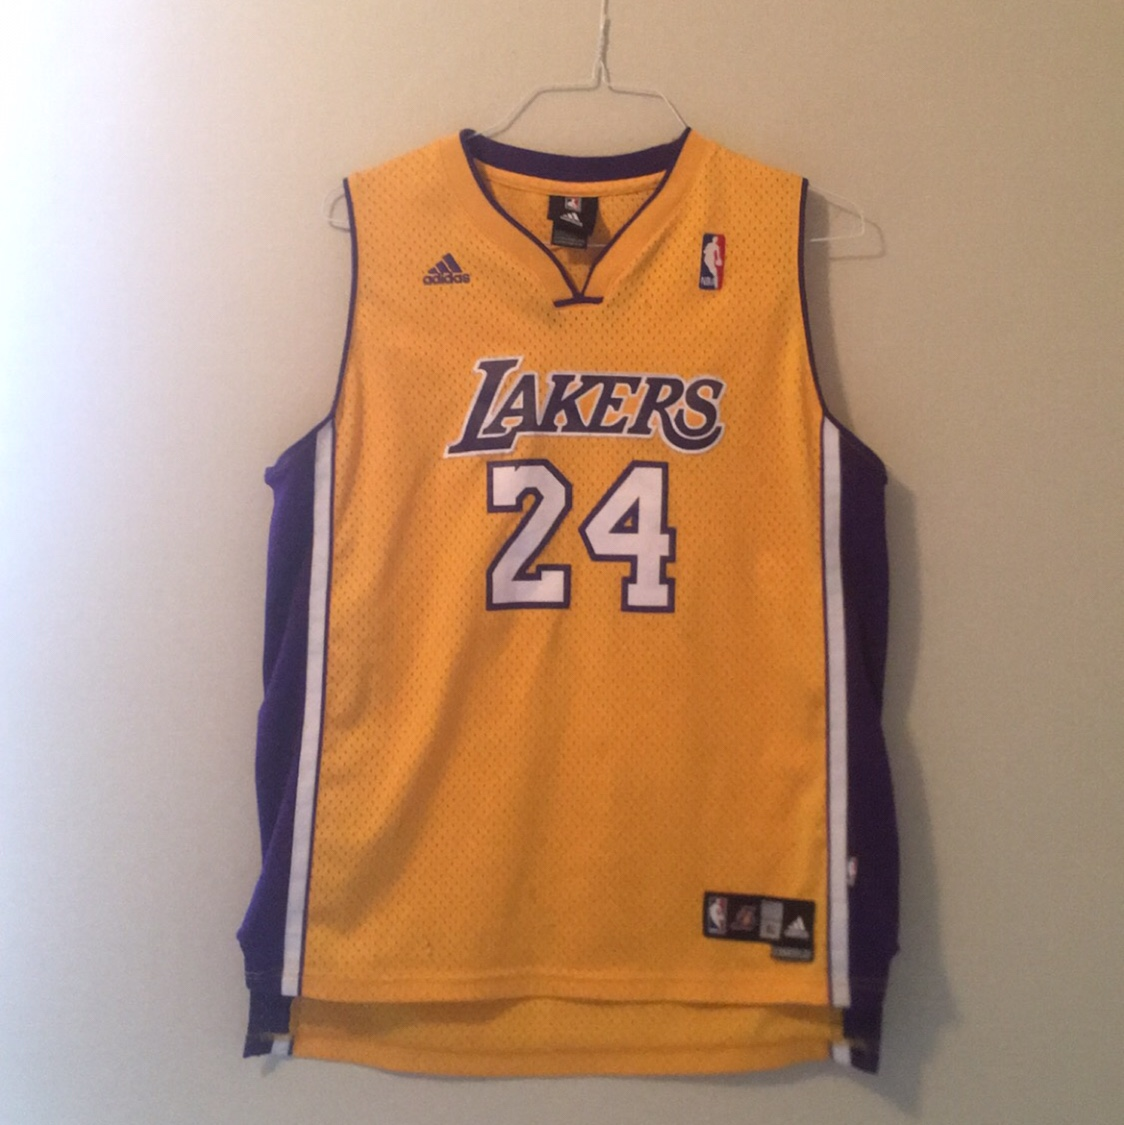 super popular b151c 280d9 Kobe Bryant Lakers home jersey. Size youth large but... - Depop